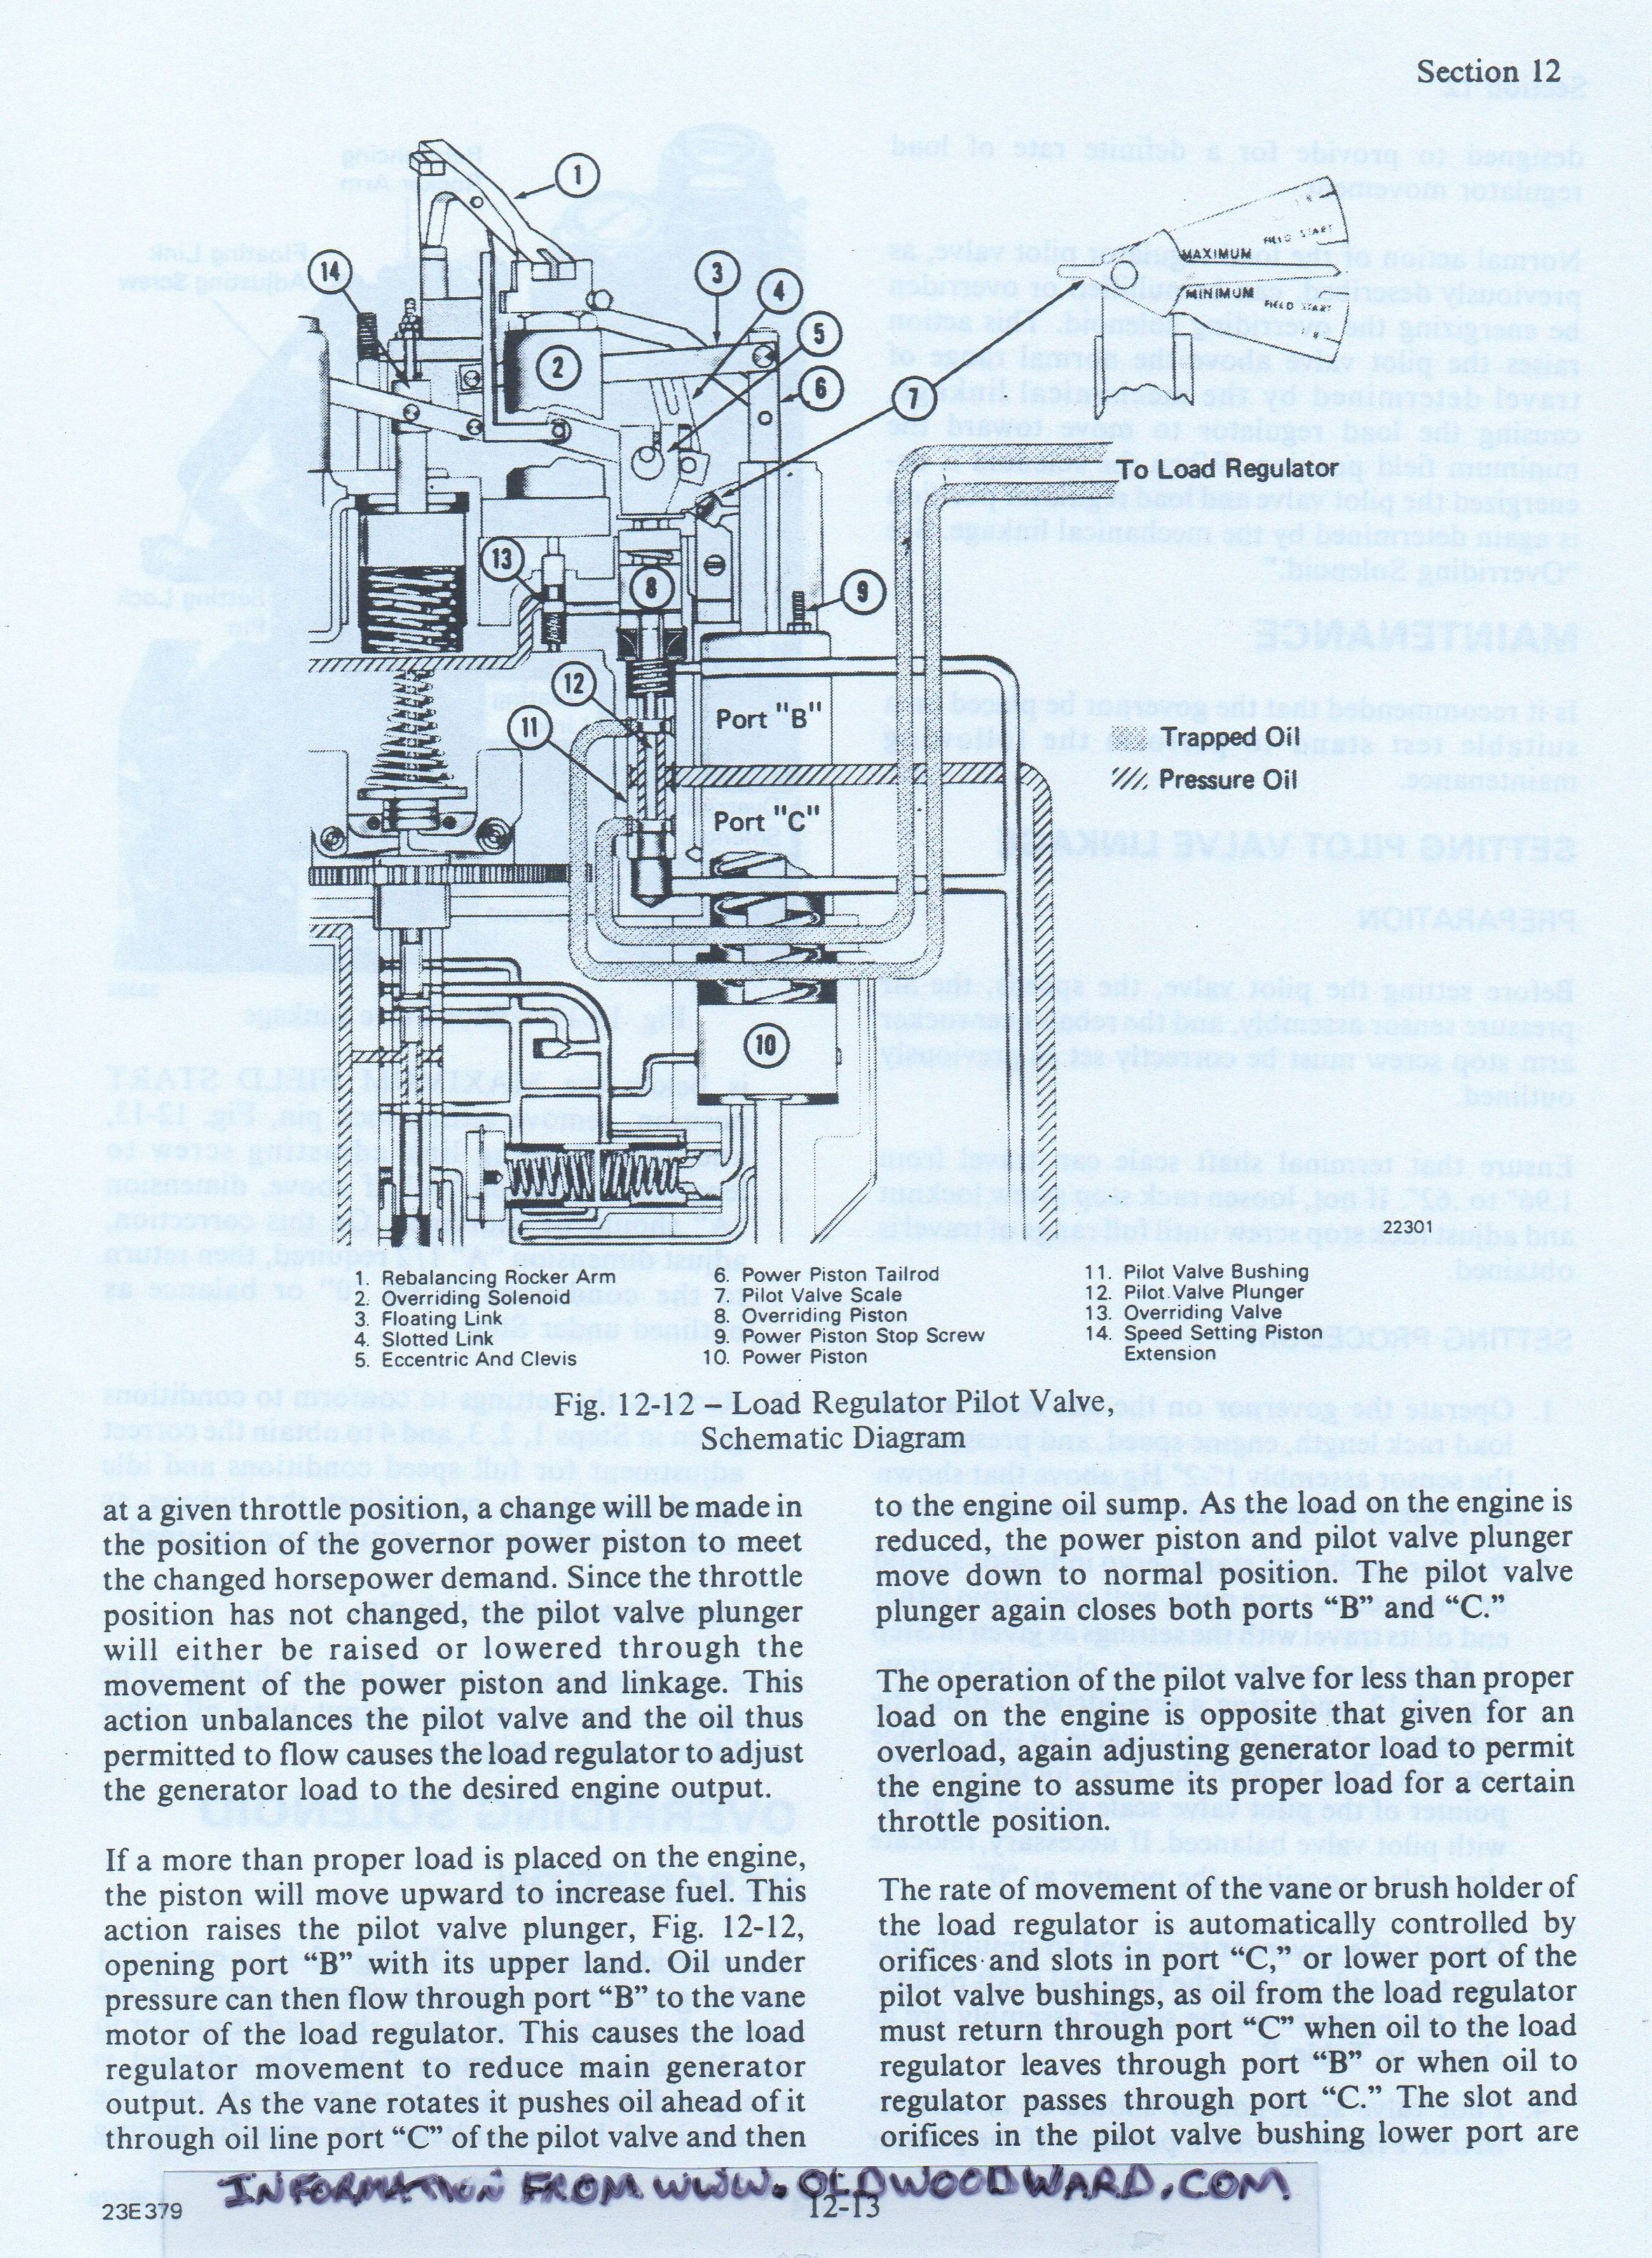 hight resolution of another schematic from an emd diesel engine operating manual showing the woodward pg series governor system